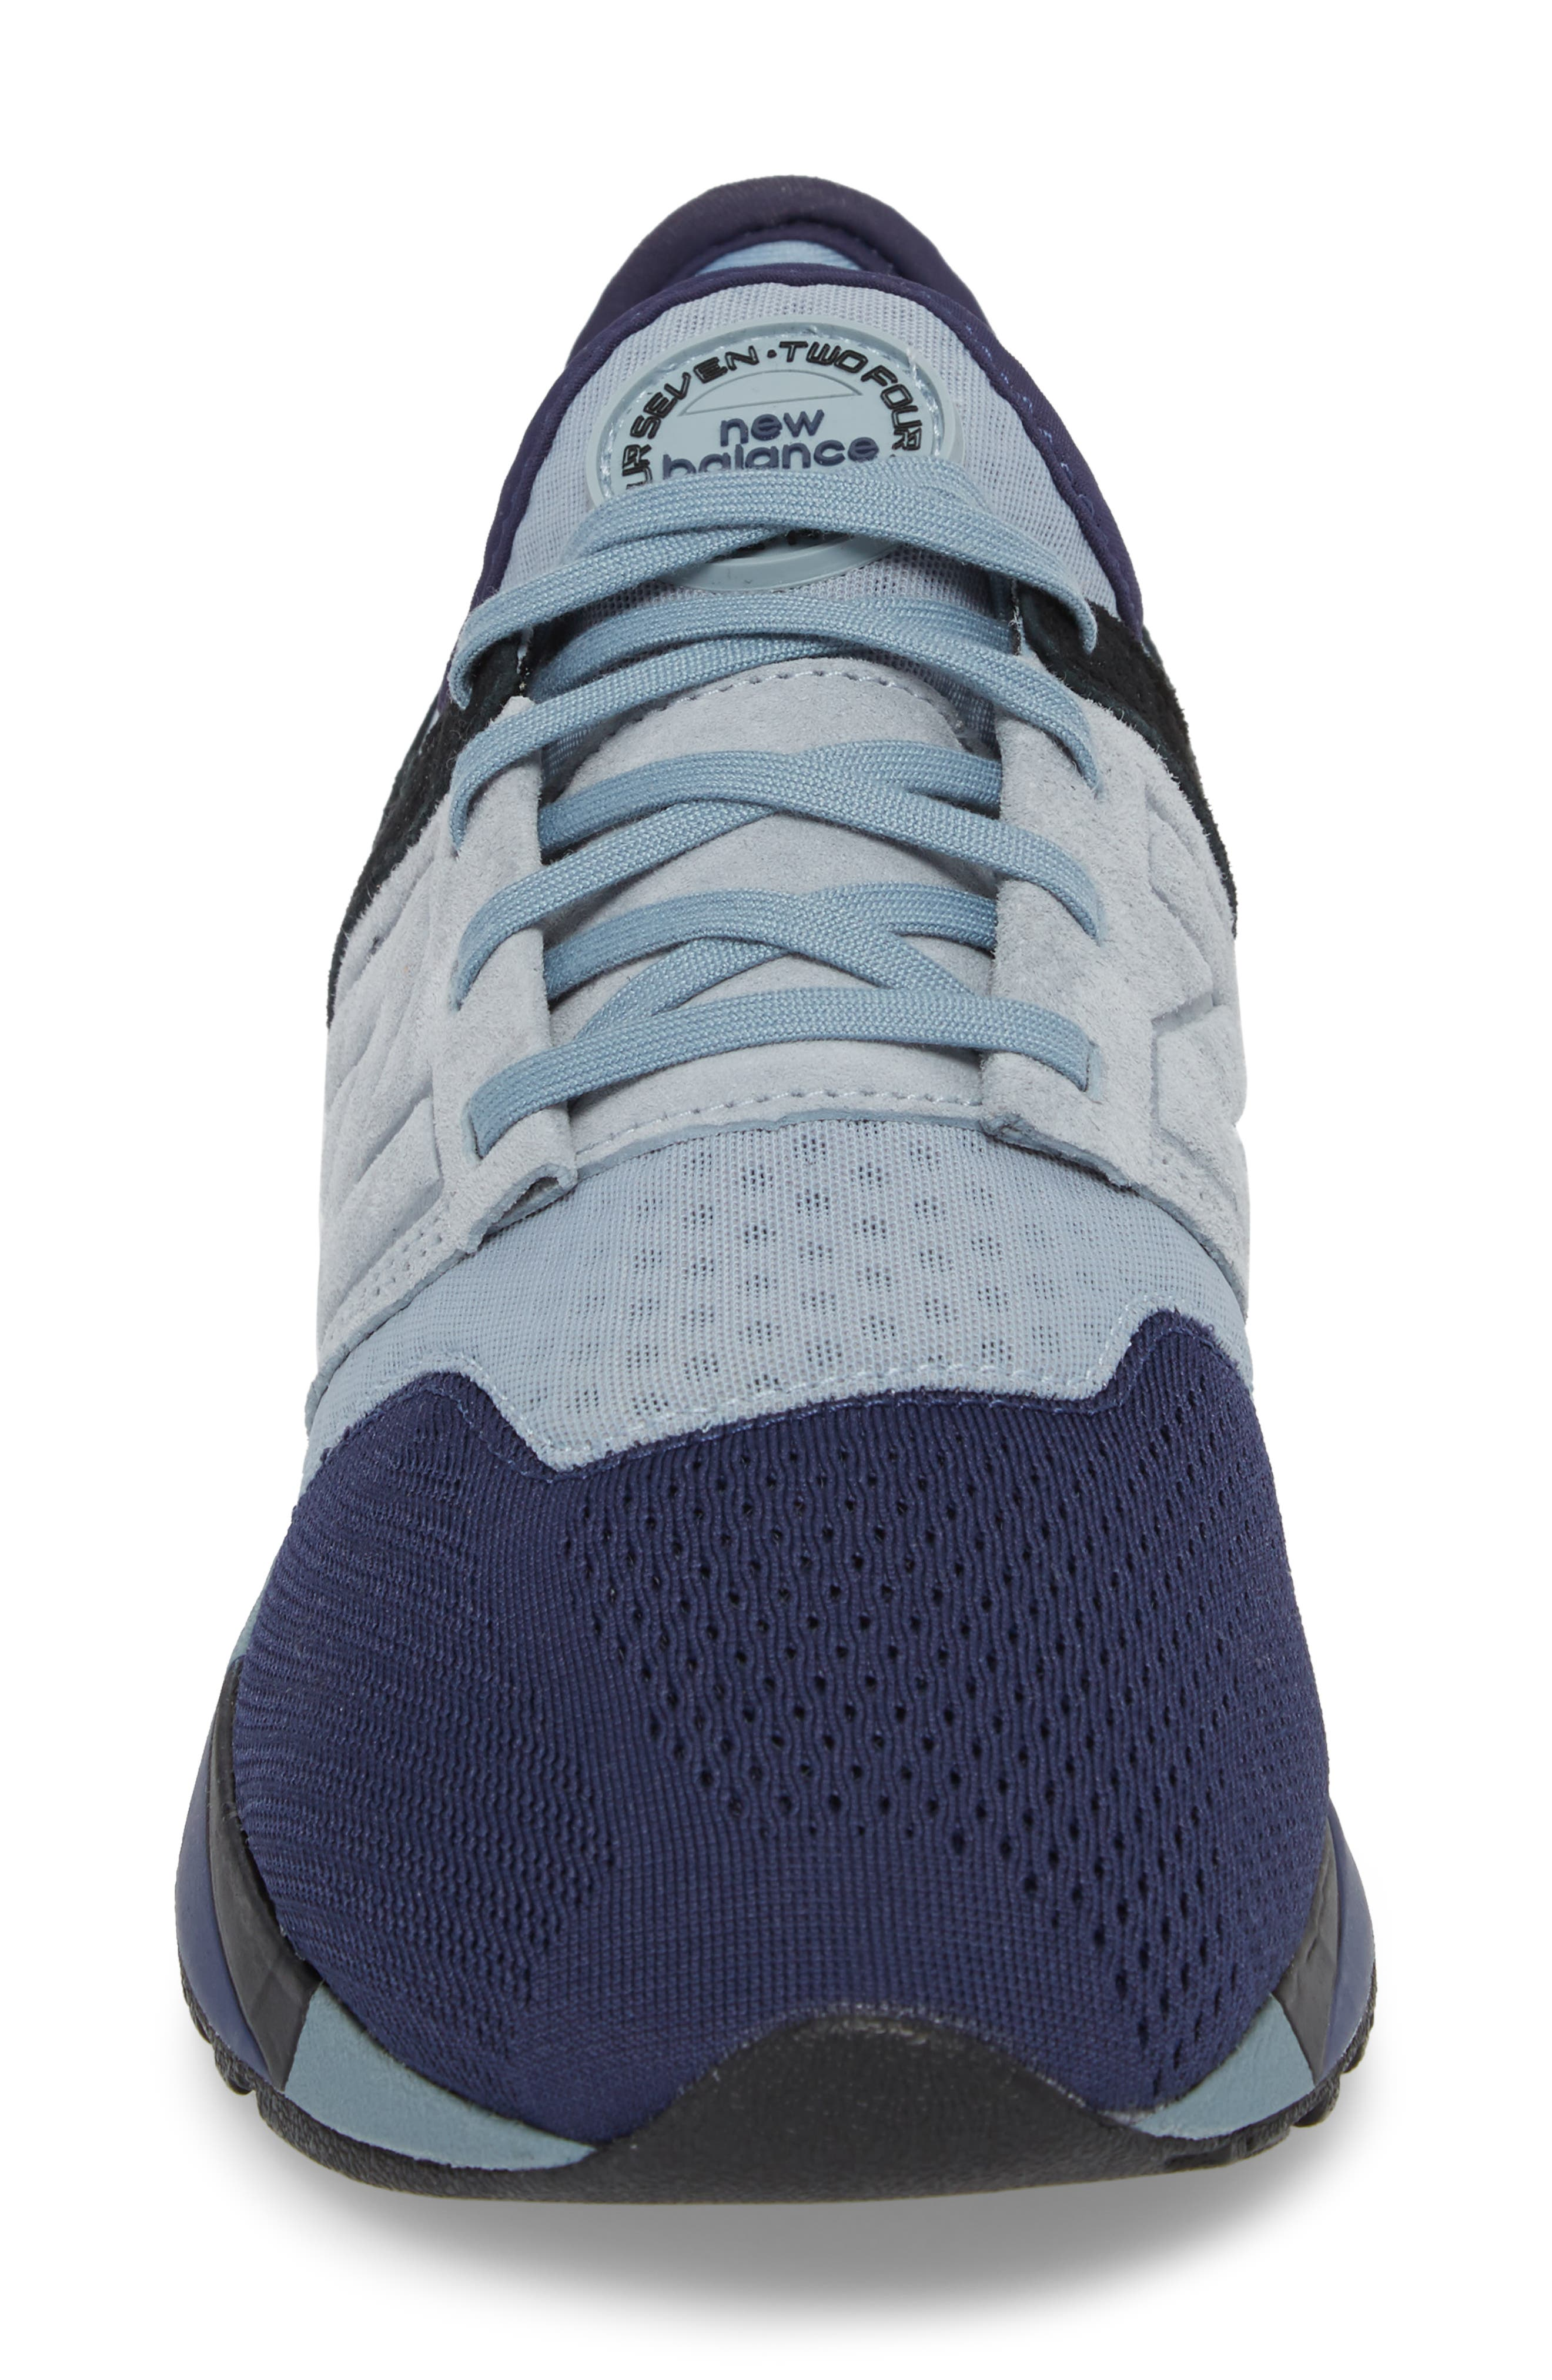 247 Sport Sneaker,                             Alternate thumbnail 4, color,                             Cyclone